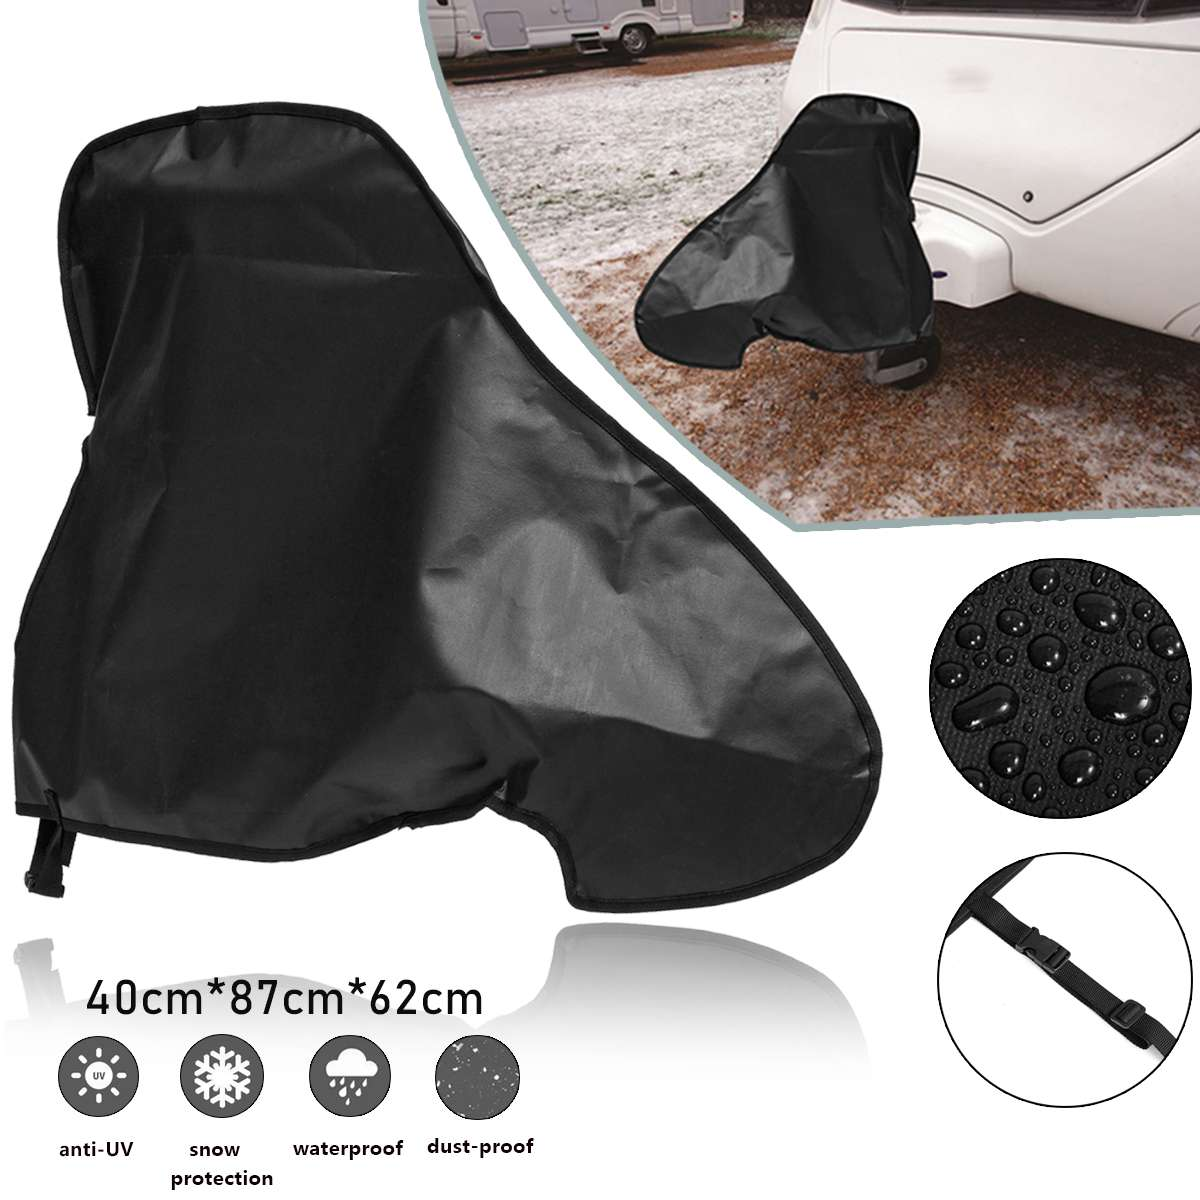 87x62x40cm Universal Waterproof Caravan Towing Hitch Cover Rain Snow Dust Dustproof Protector For RV Tailer